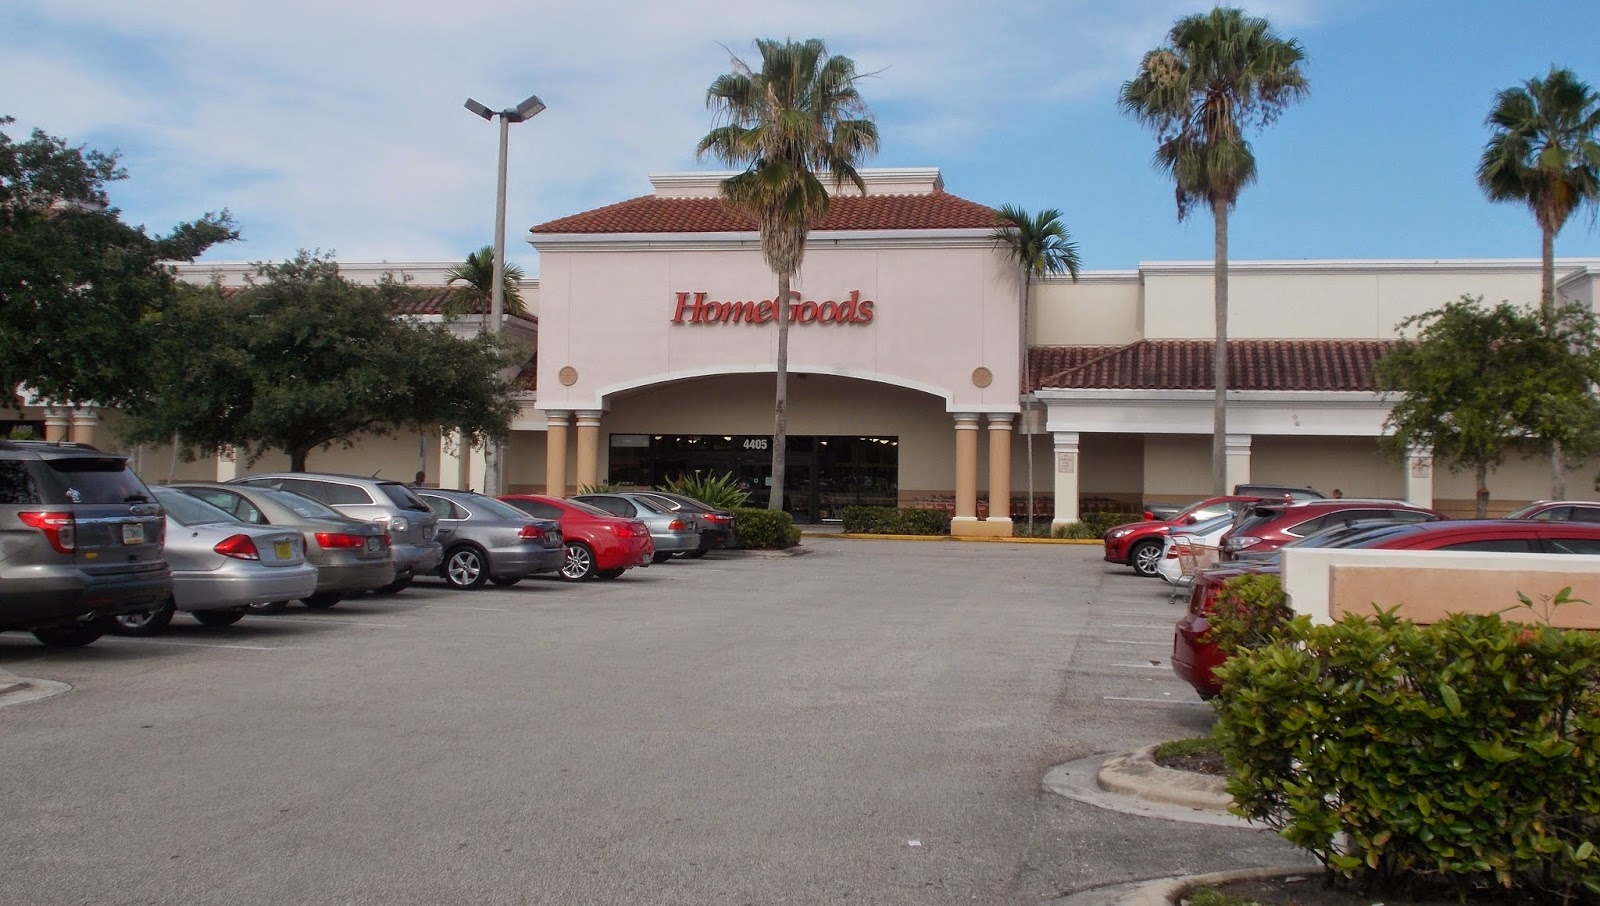 Albertsons Florida Blog A Quick Glimpse Former Albertsons - Home goods palm beach gardens